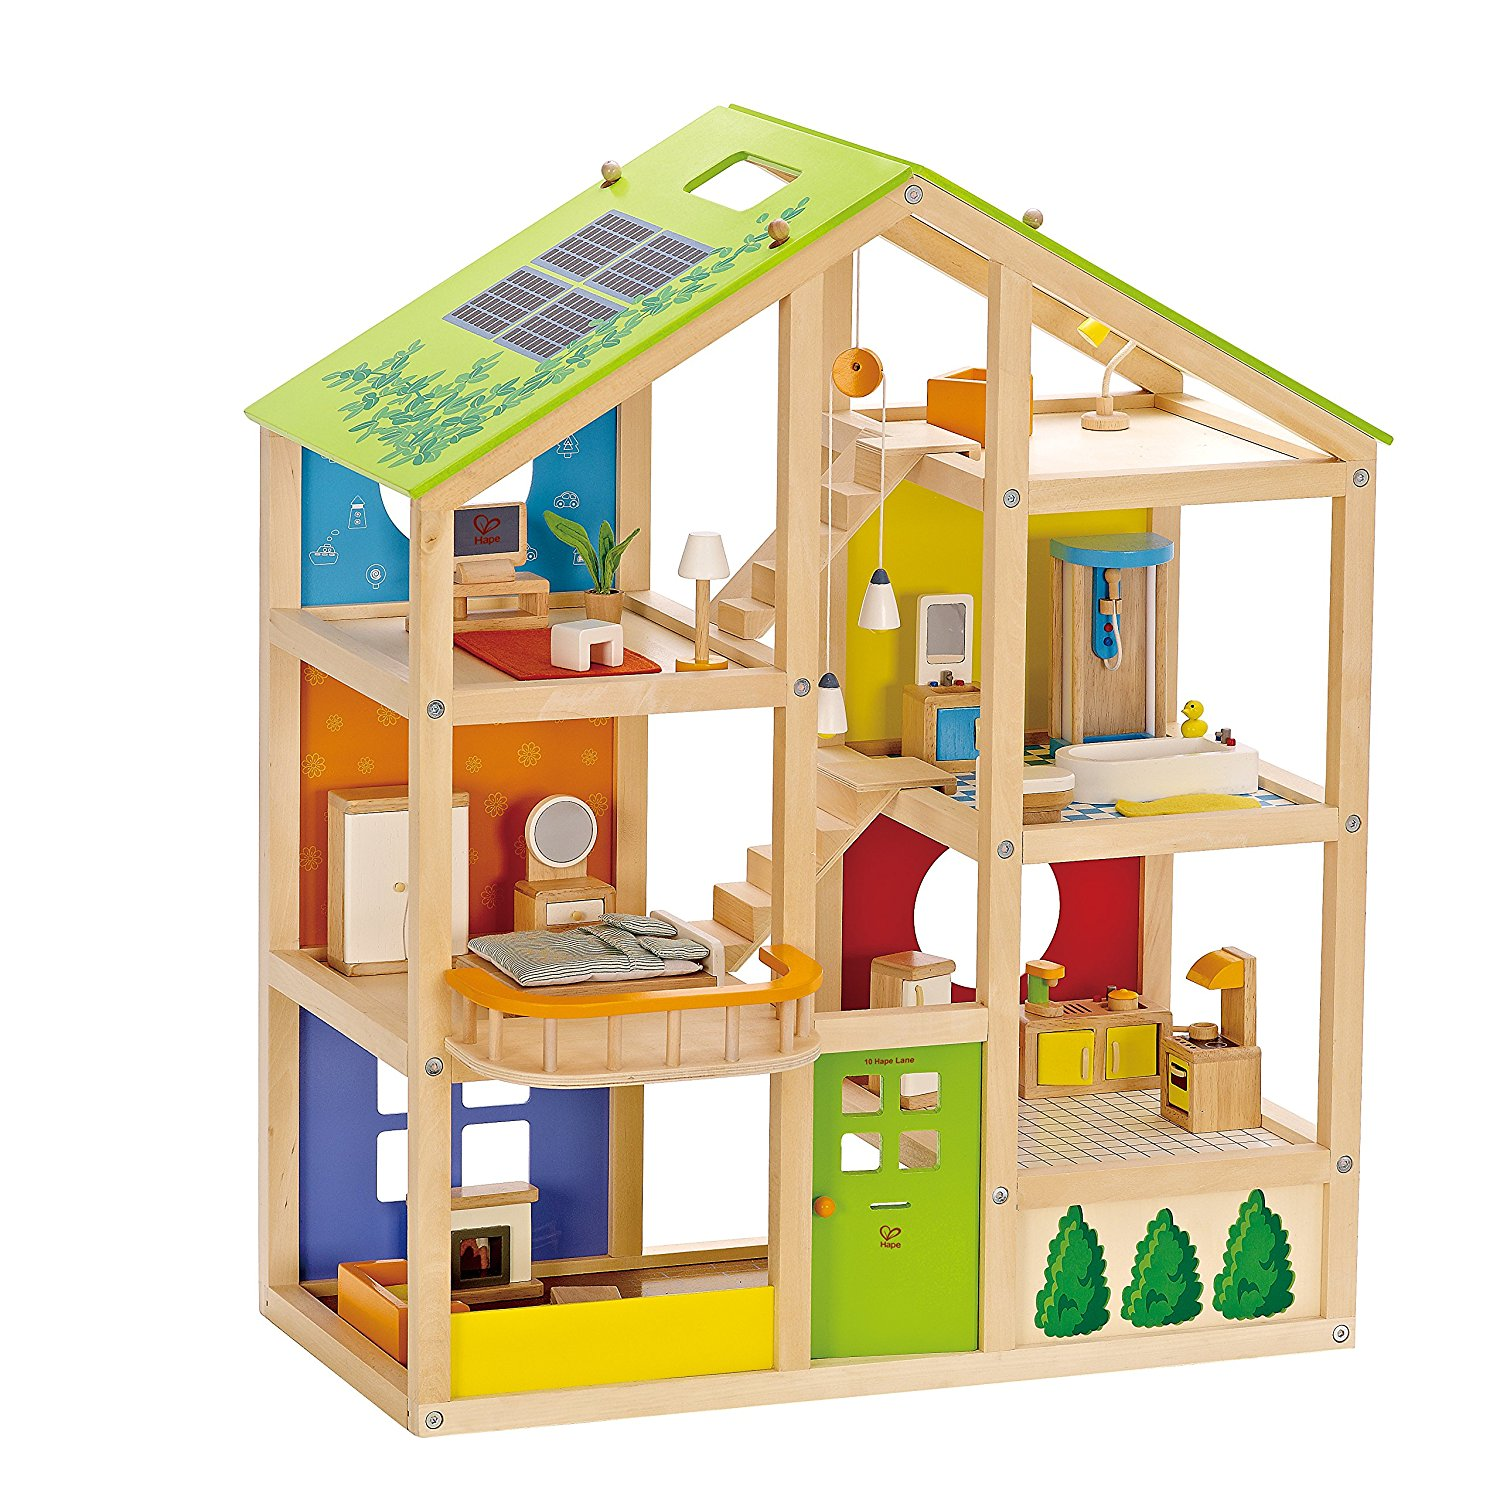 doll house - I think I can do an entire article on so many of these toys, which makes me think I may be picking some good ones! (Tooting my own horn here!) For social skills, this toy is perfect because kids can reenact activities they see everyday; cooking in the kitchen, taking a bath, watch tv, etc. Receptively, you can ask your kiddo to